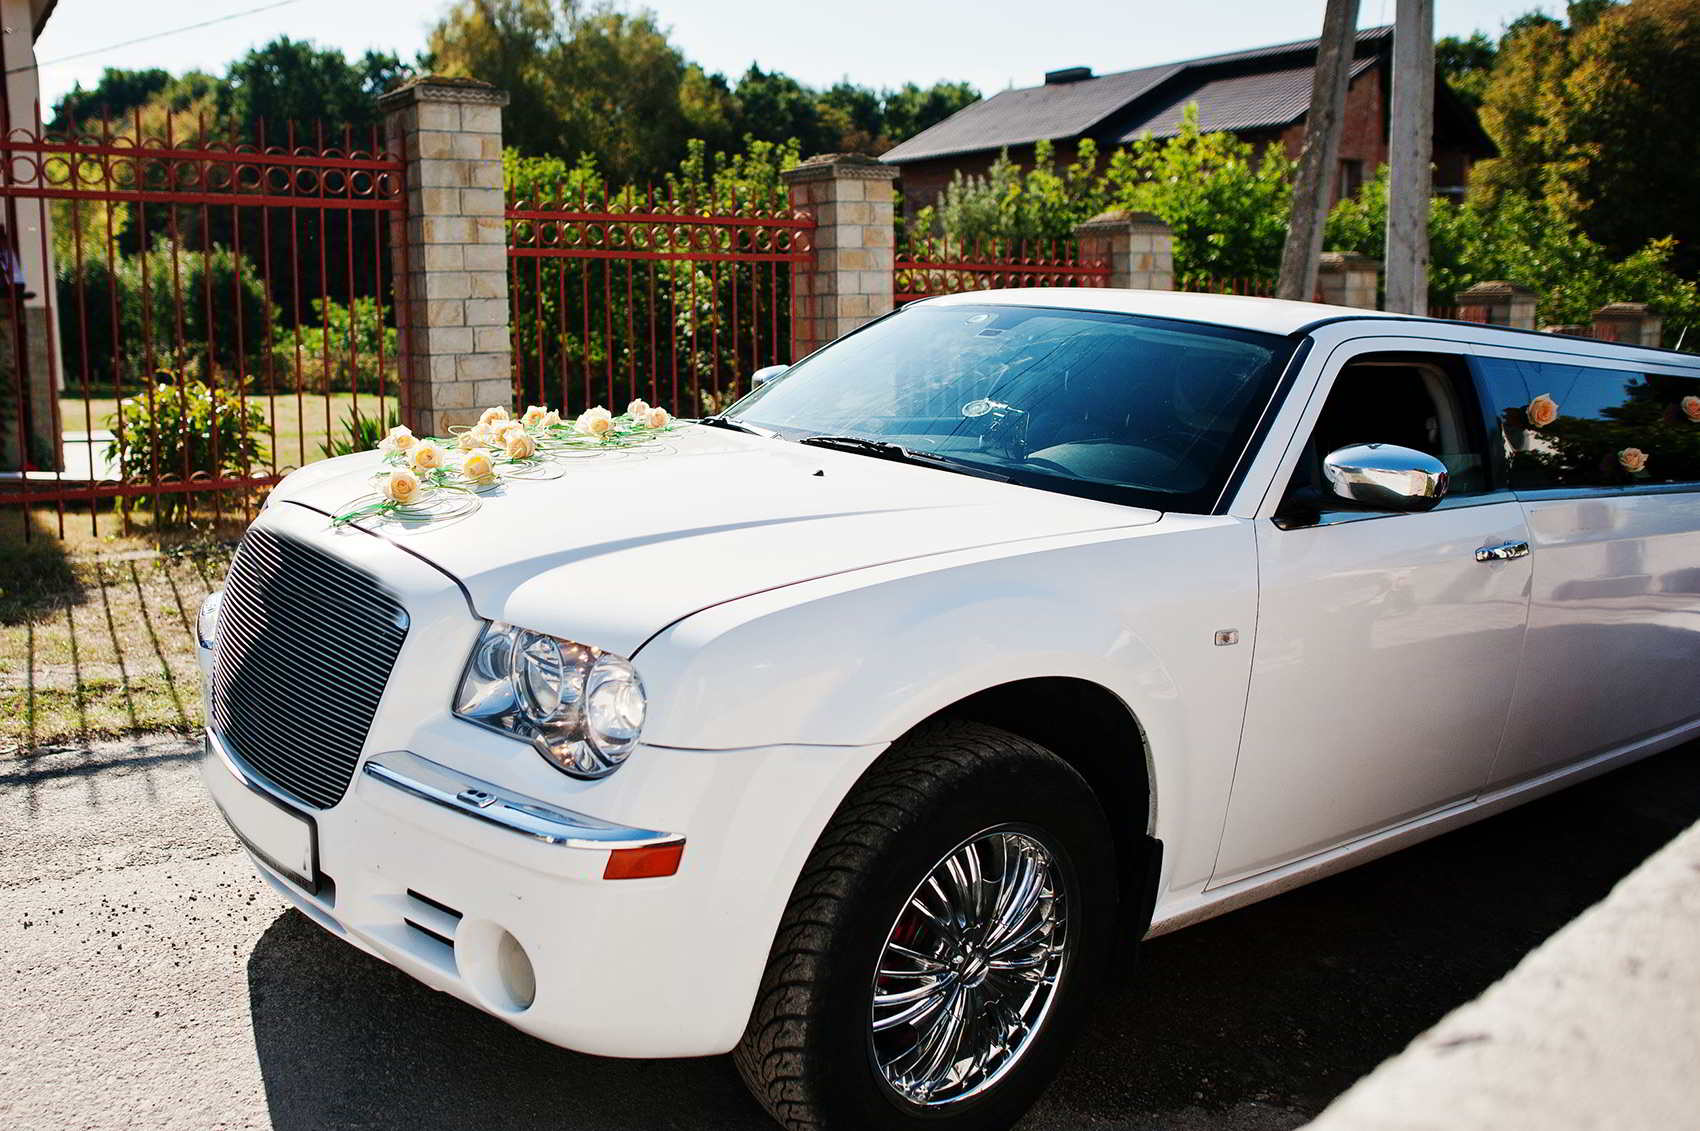 10-Passenger White Stretched Clearwater, Florida Wedding Limo